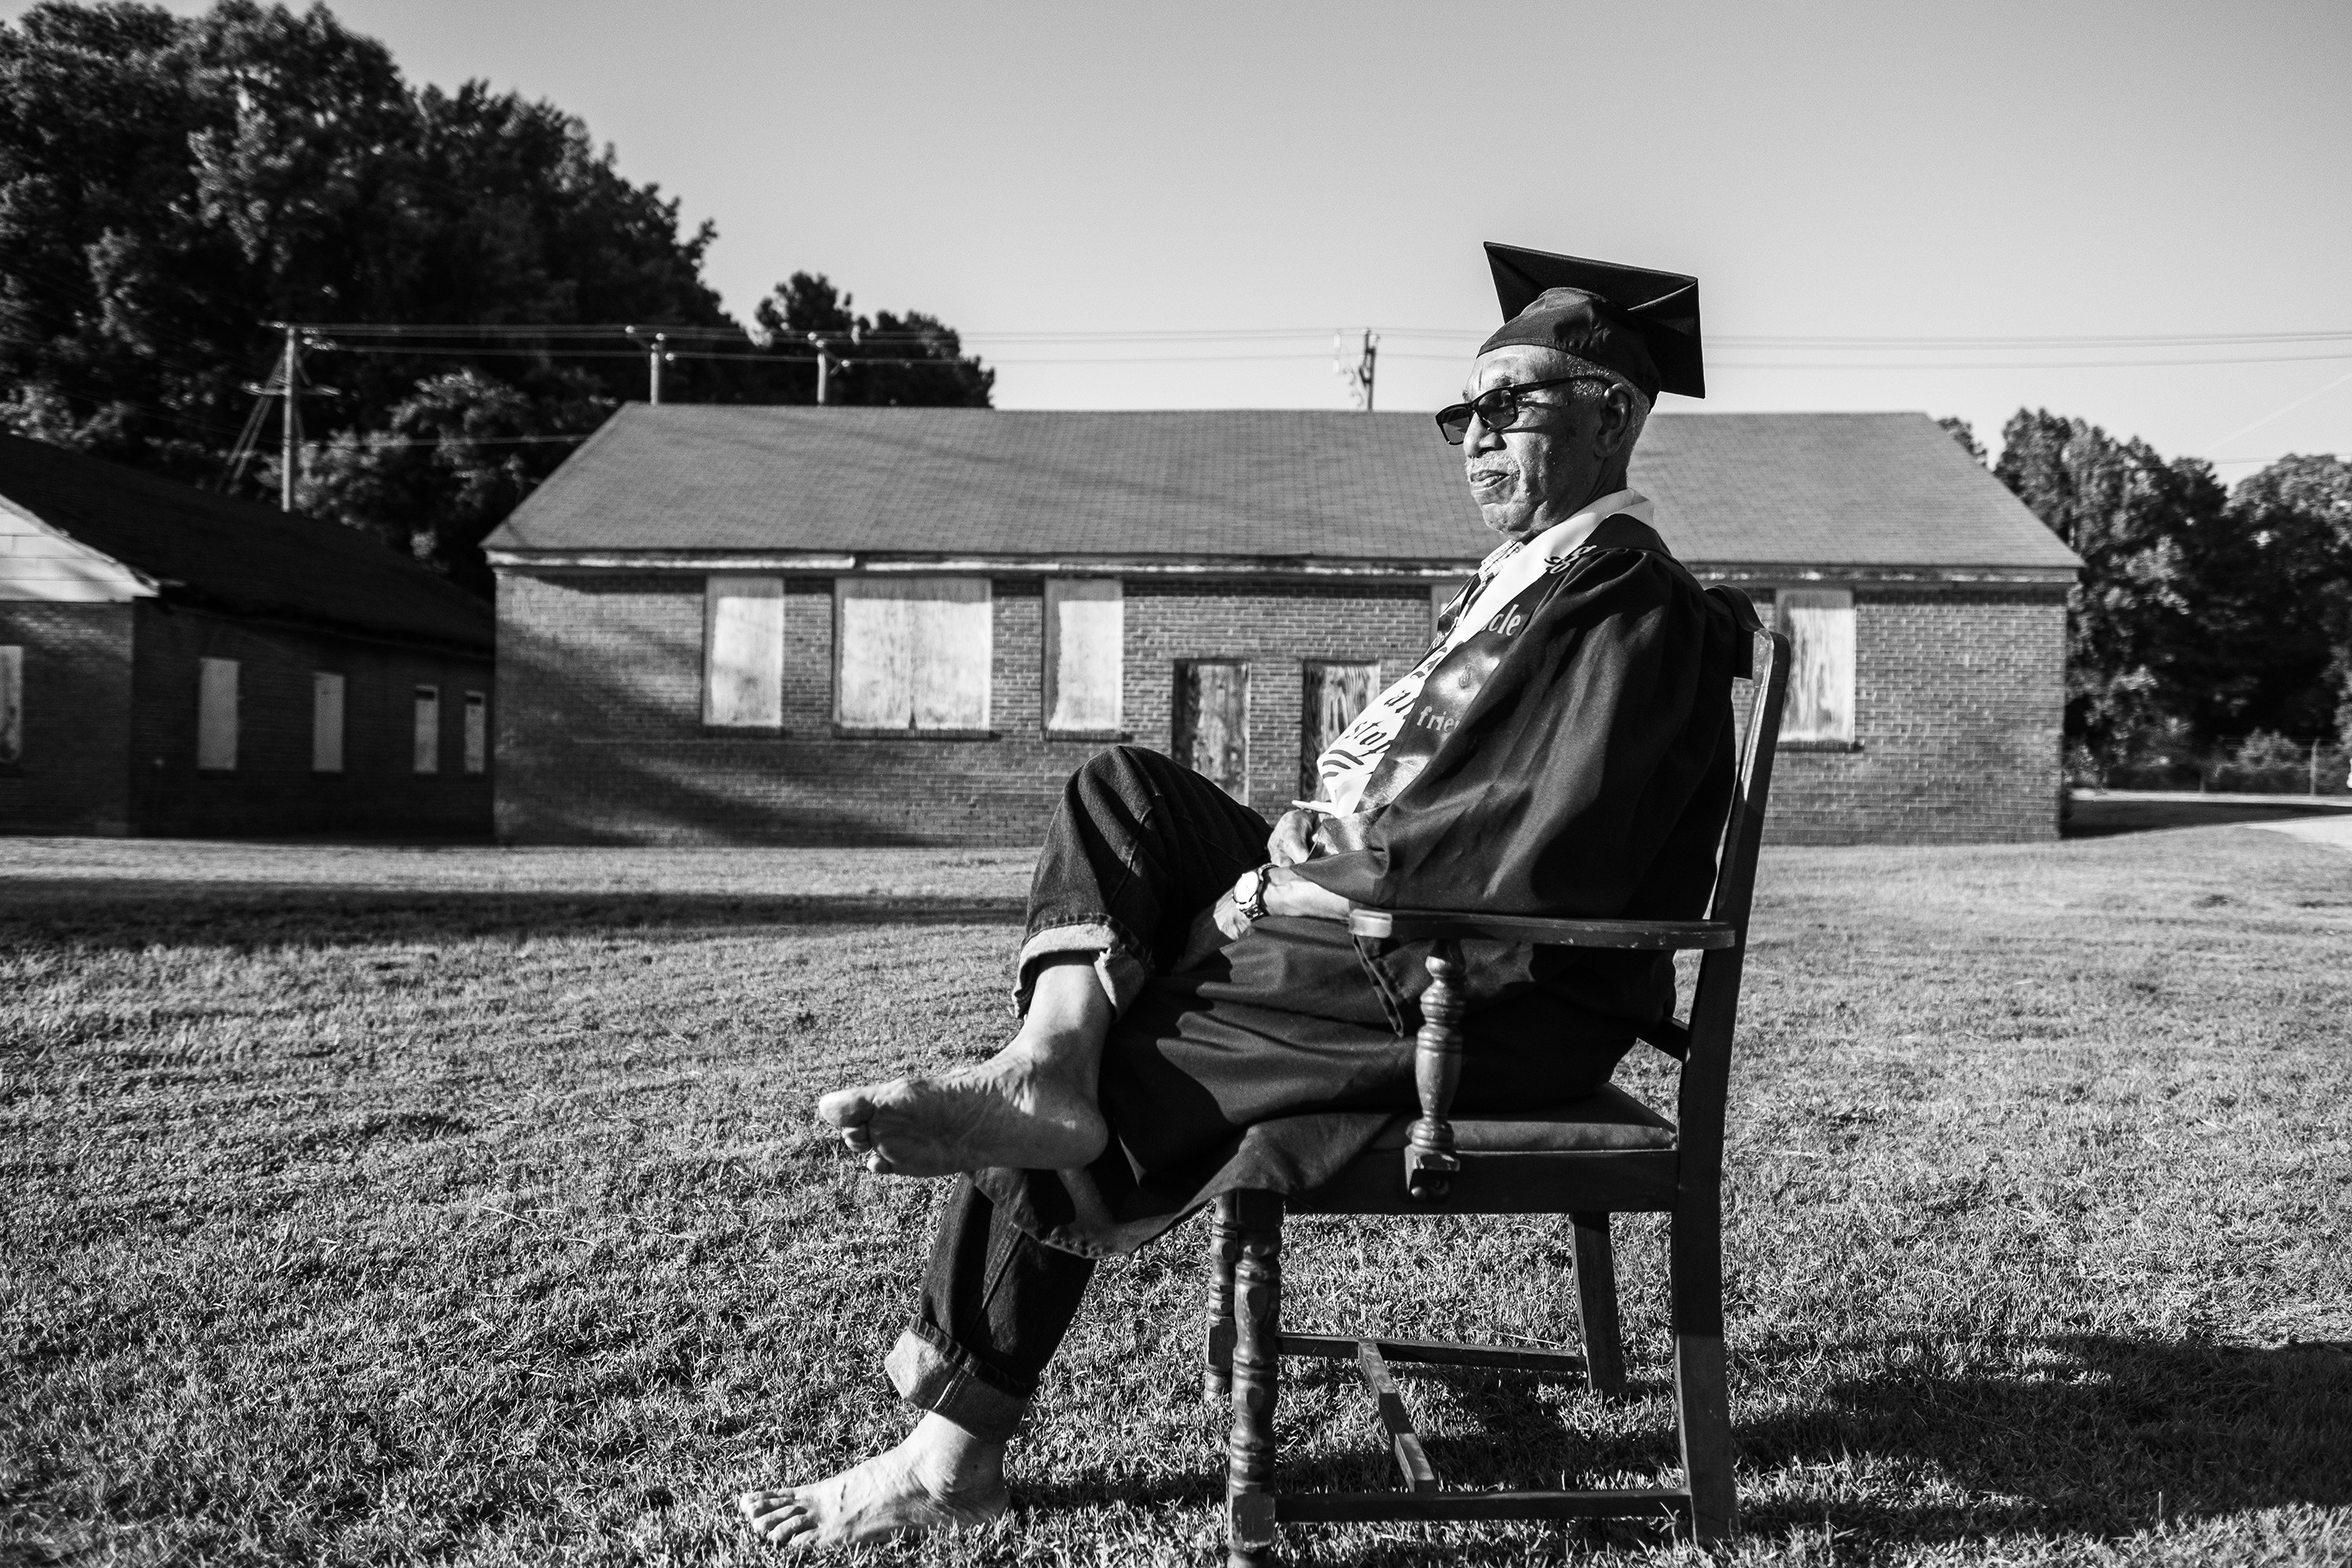 A Black man in graduation robes sits barefoot on a chair in a backyard